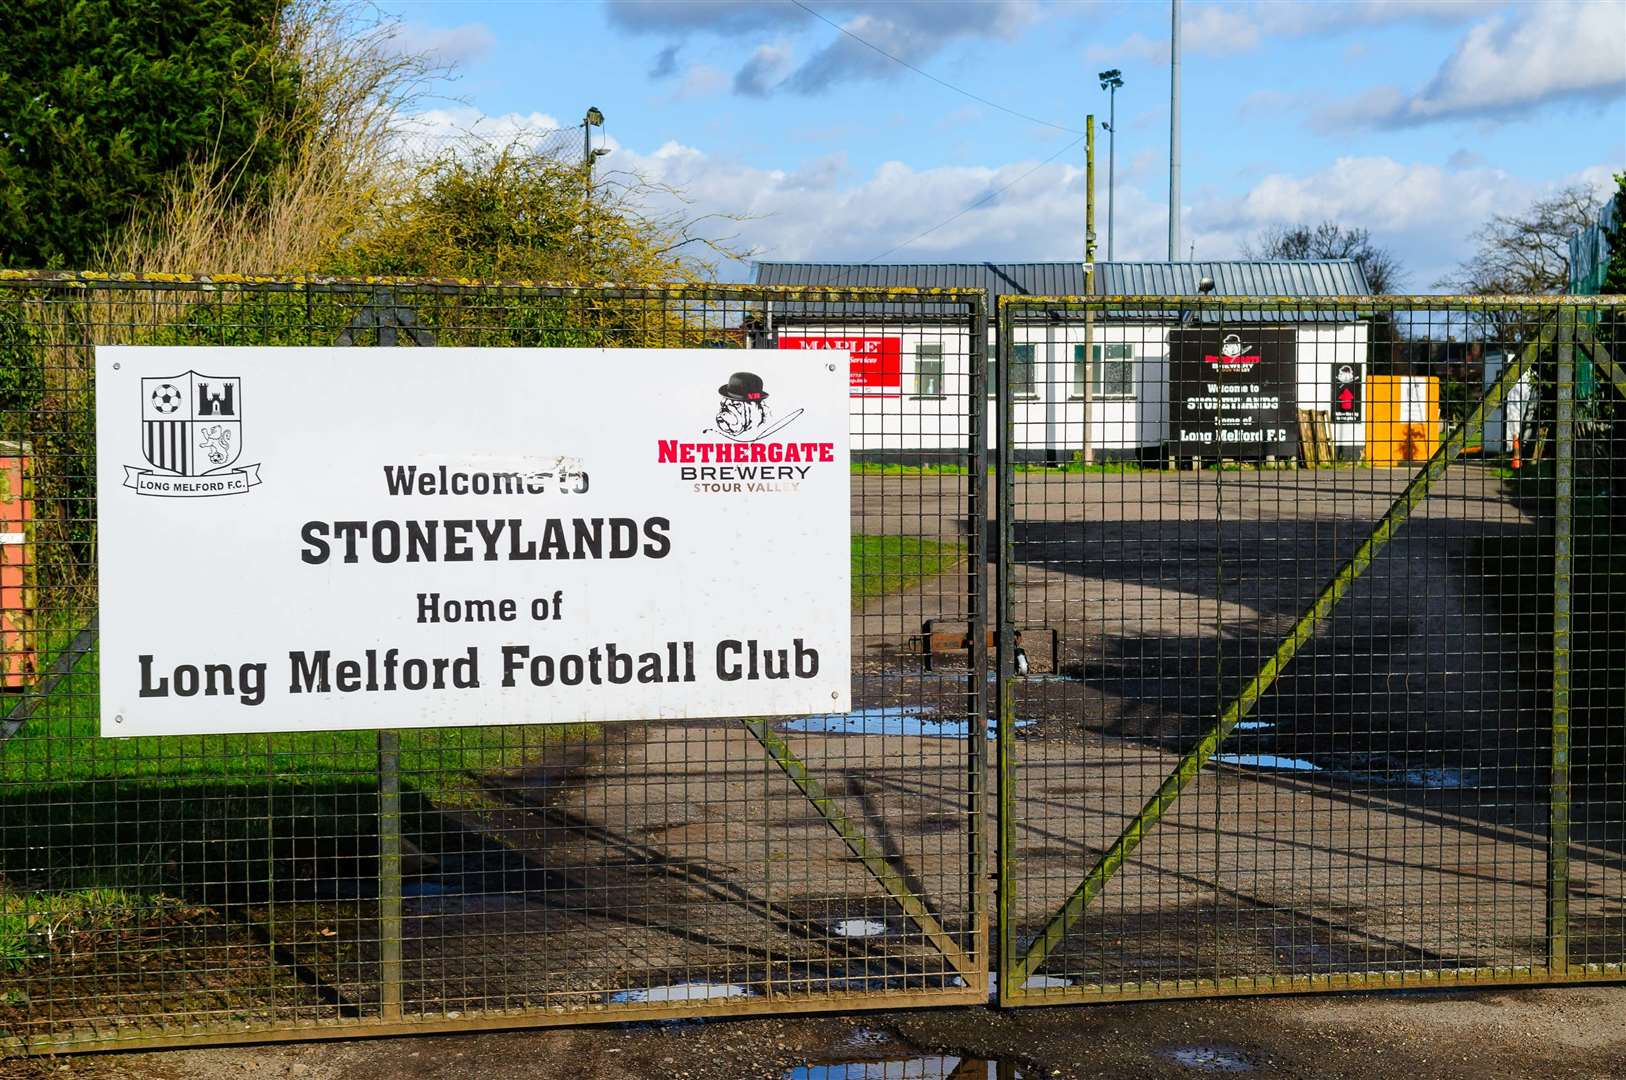 11/02/2020, Long Melford, UK. ..Long Melford Football Club grounds and club house...Photo by Mark Bullimore. (28959336)